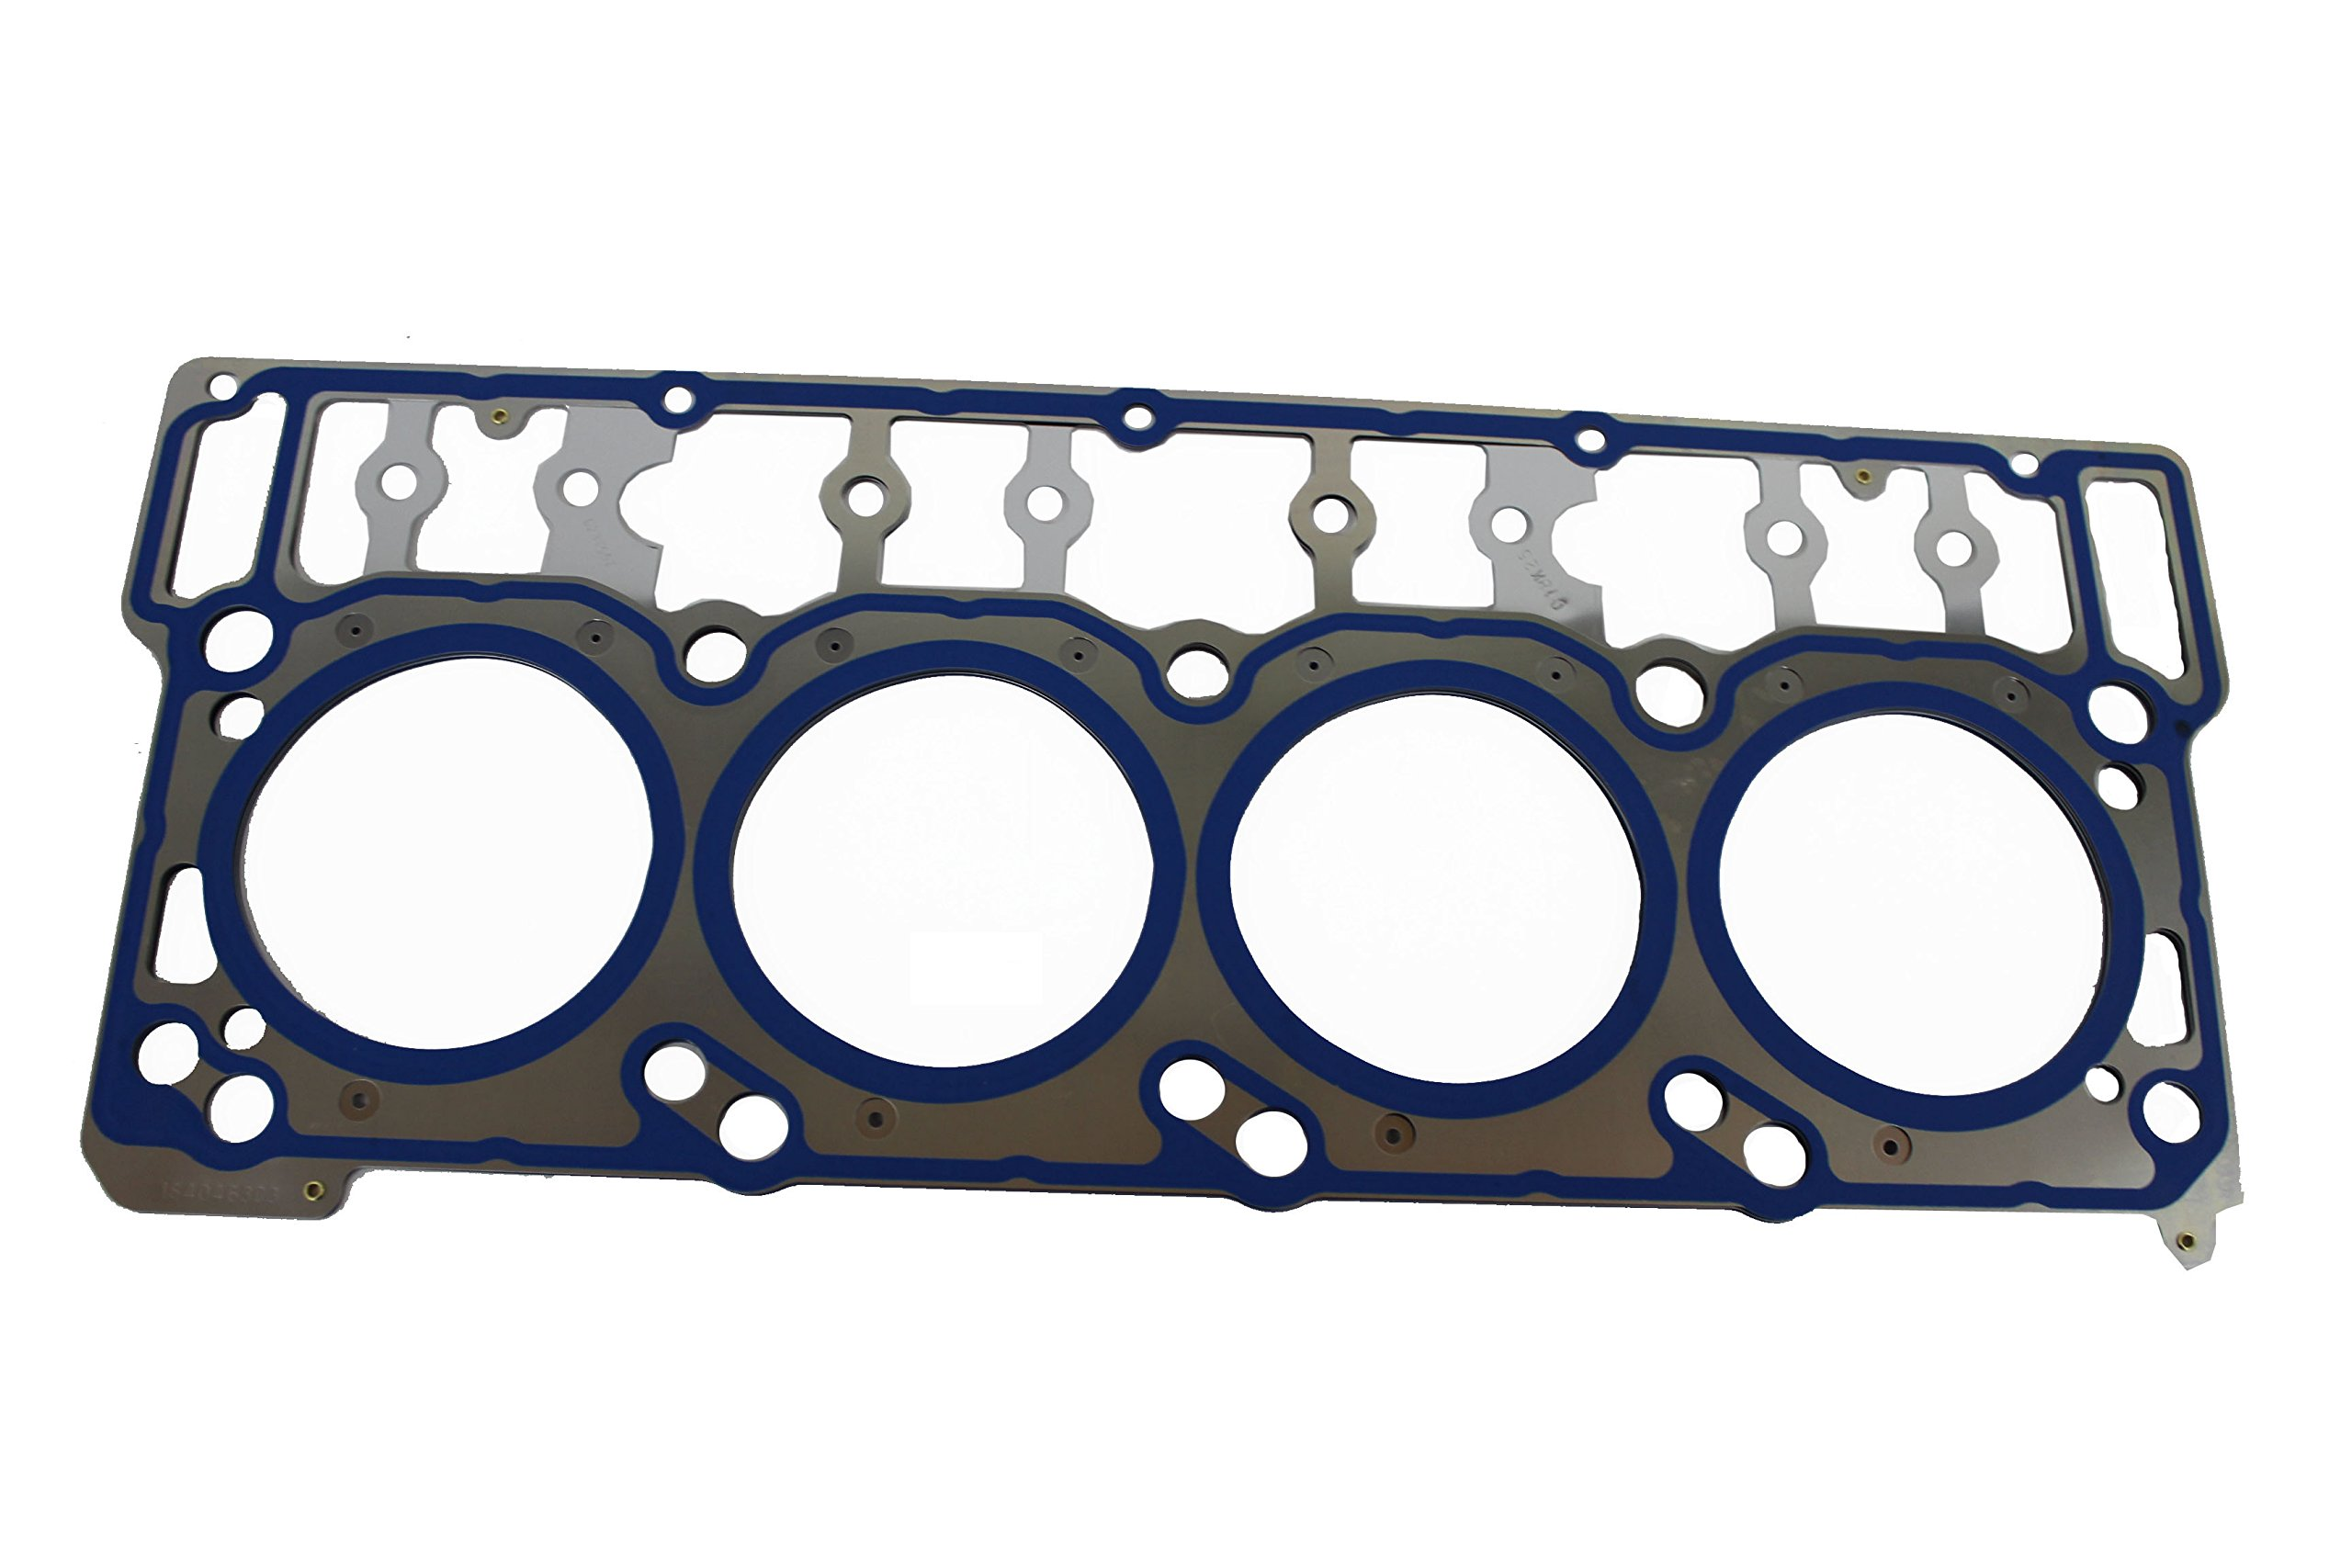 Genuine Ford 4C3Z-6051-EB Cylinder Head Gasket by Ford